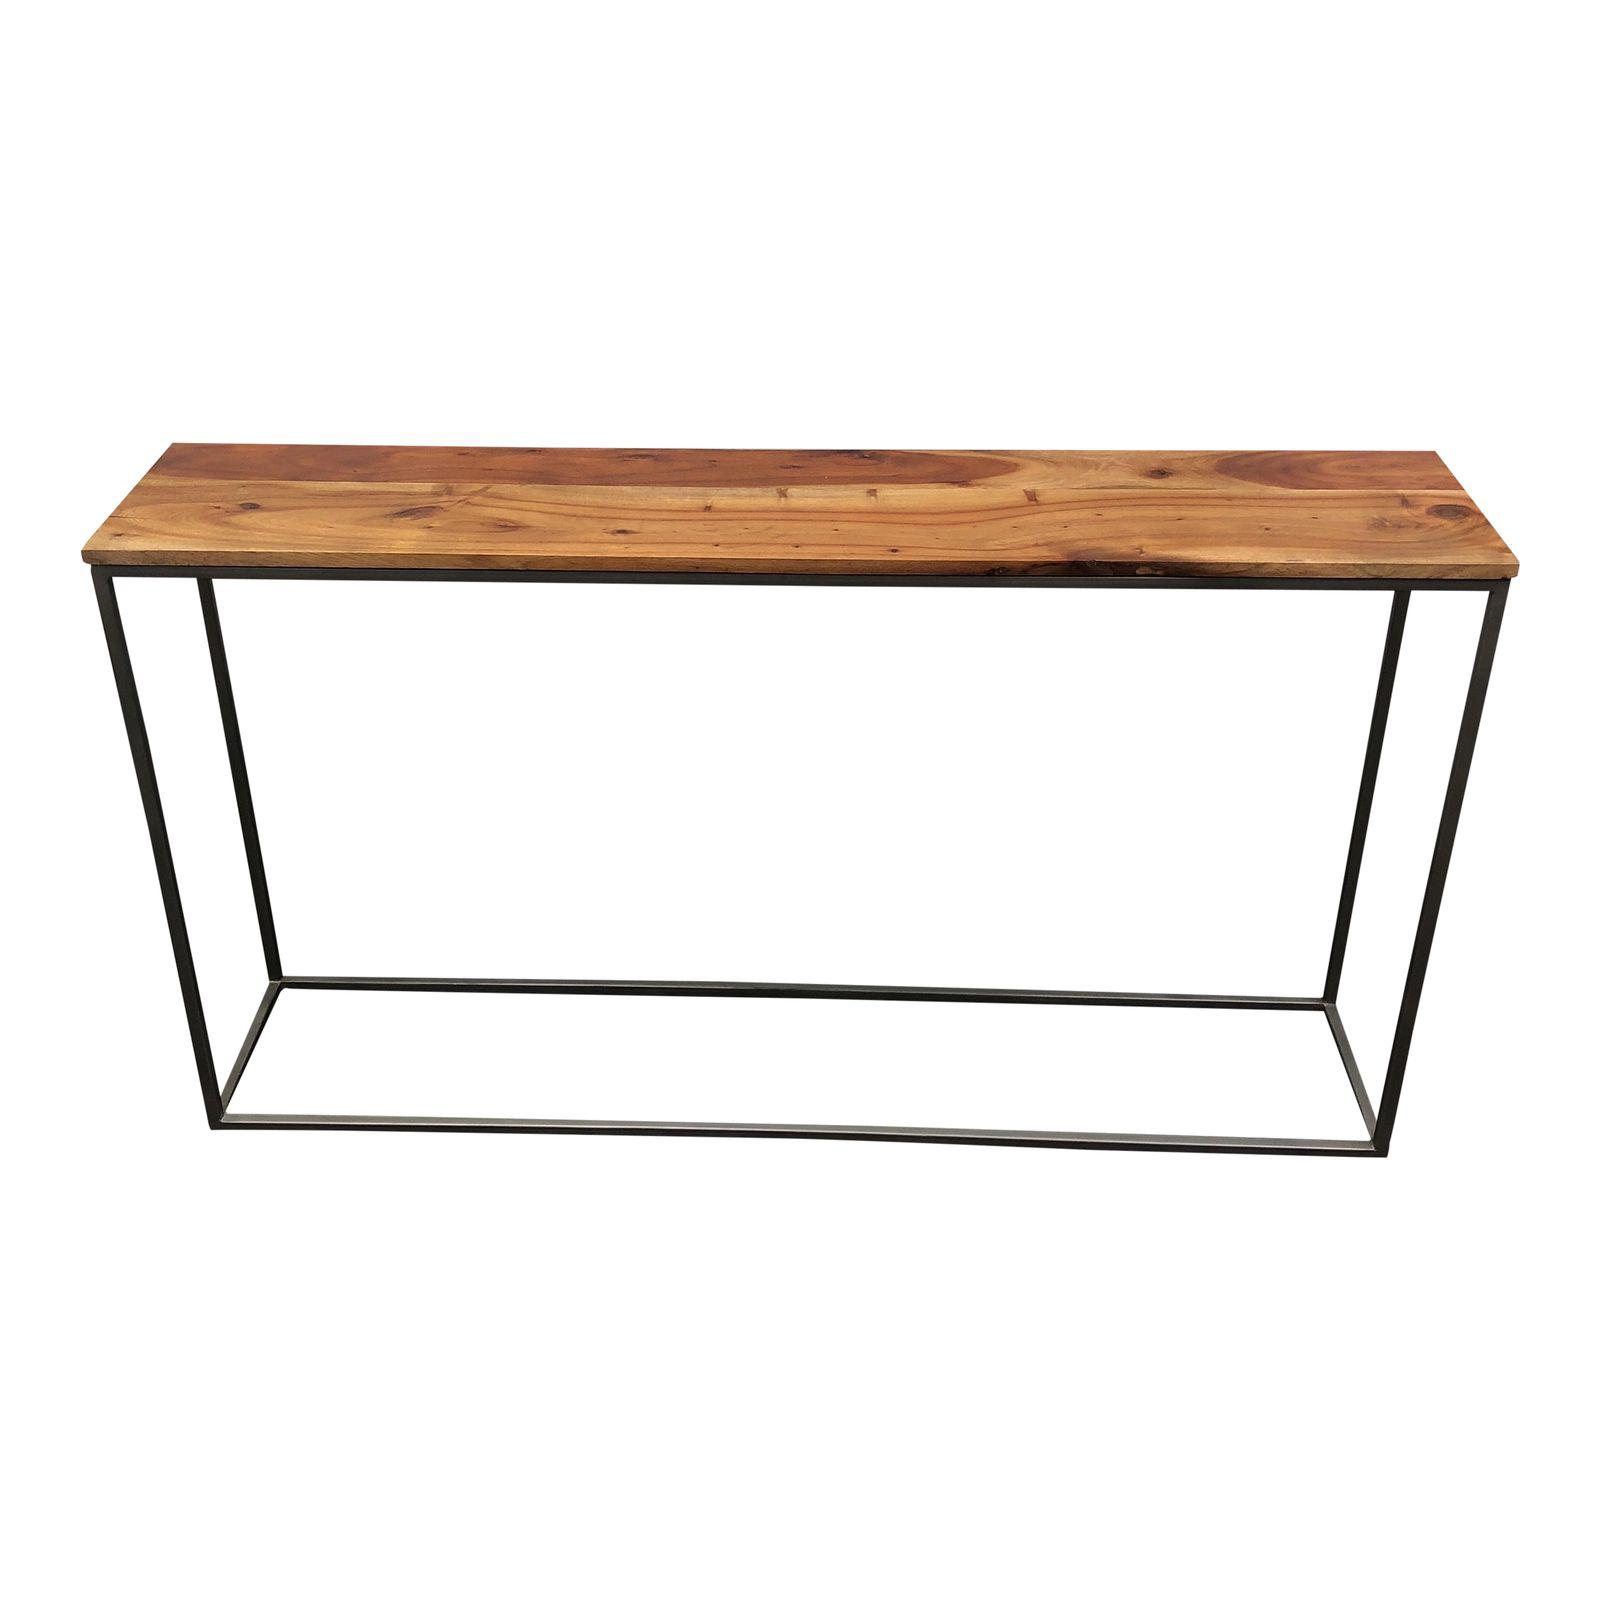 Cb2 Frame Work Console Table 0982 Design Plus Gallery